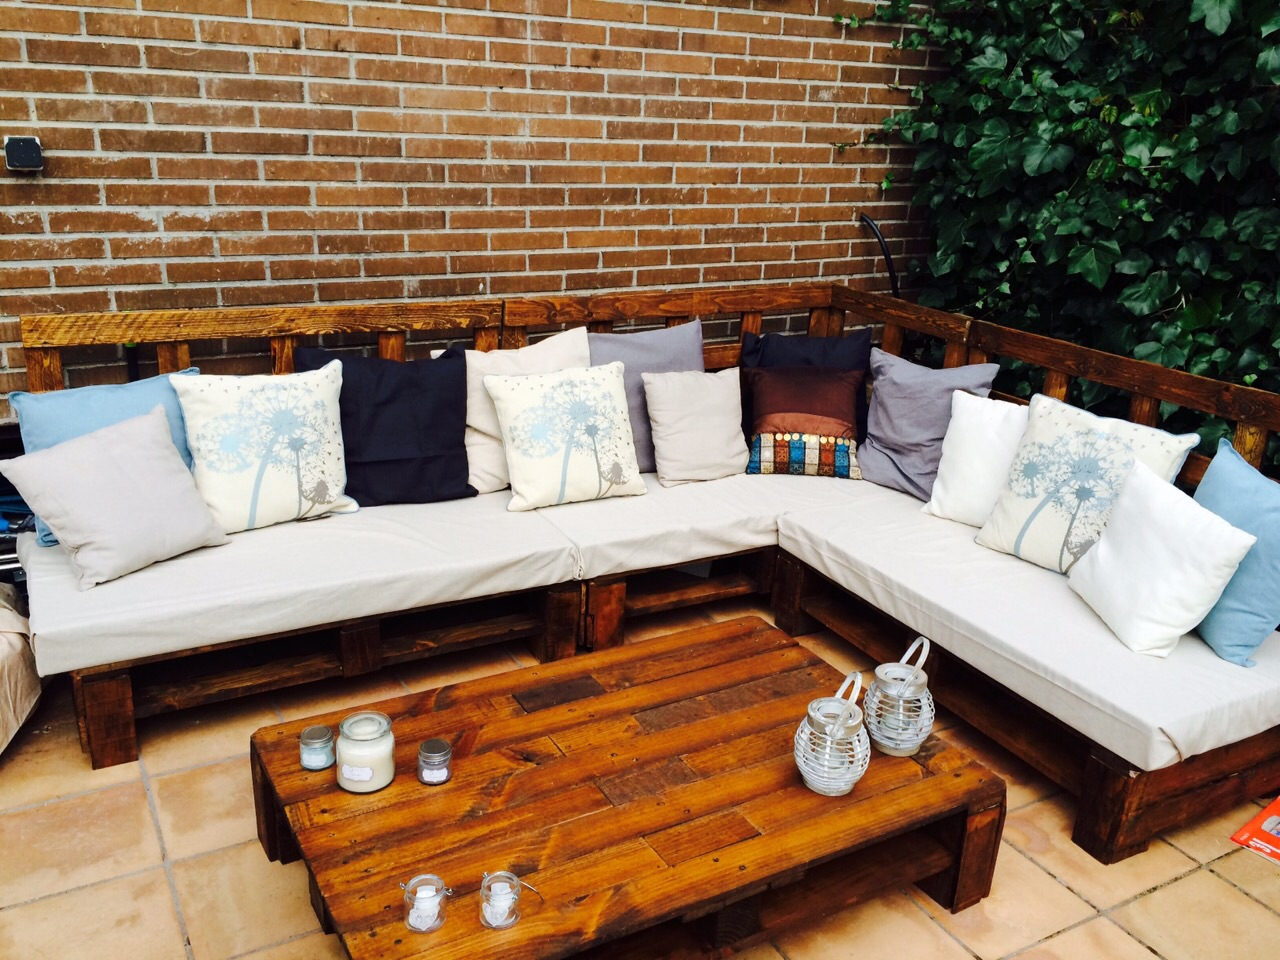 Sillones Para Porches Porches Decorpalets La Mancha